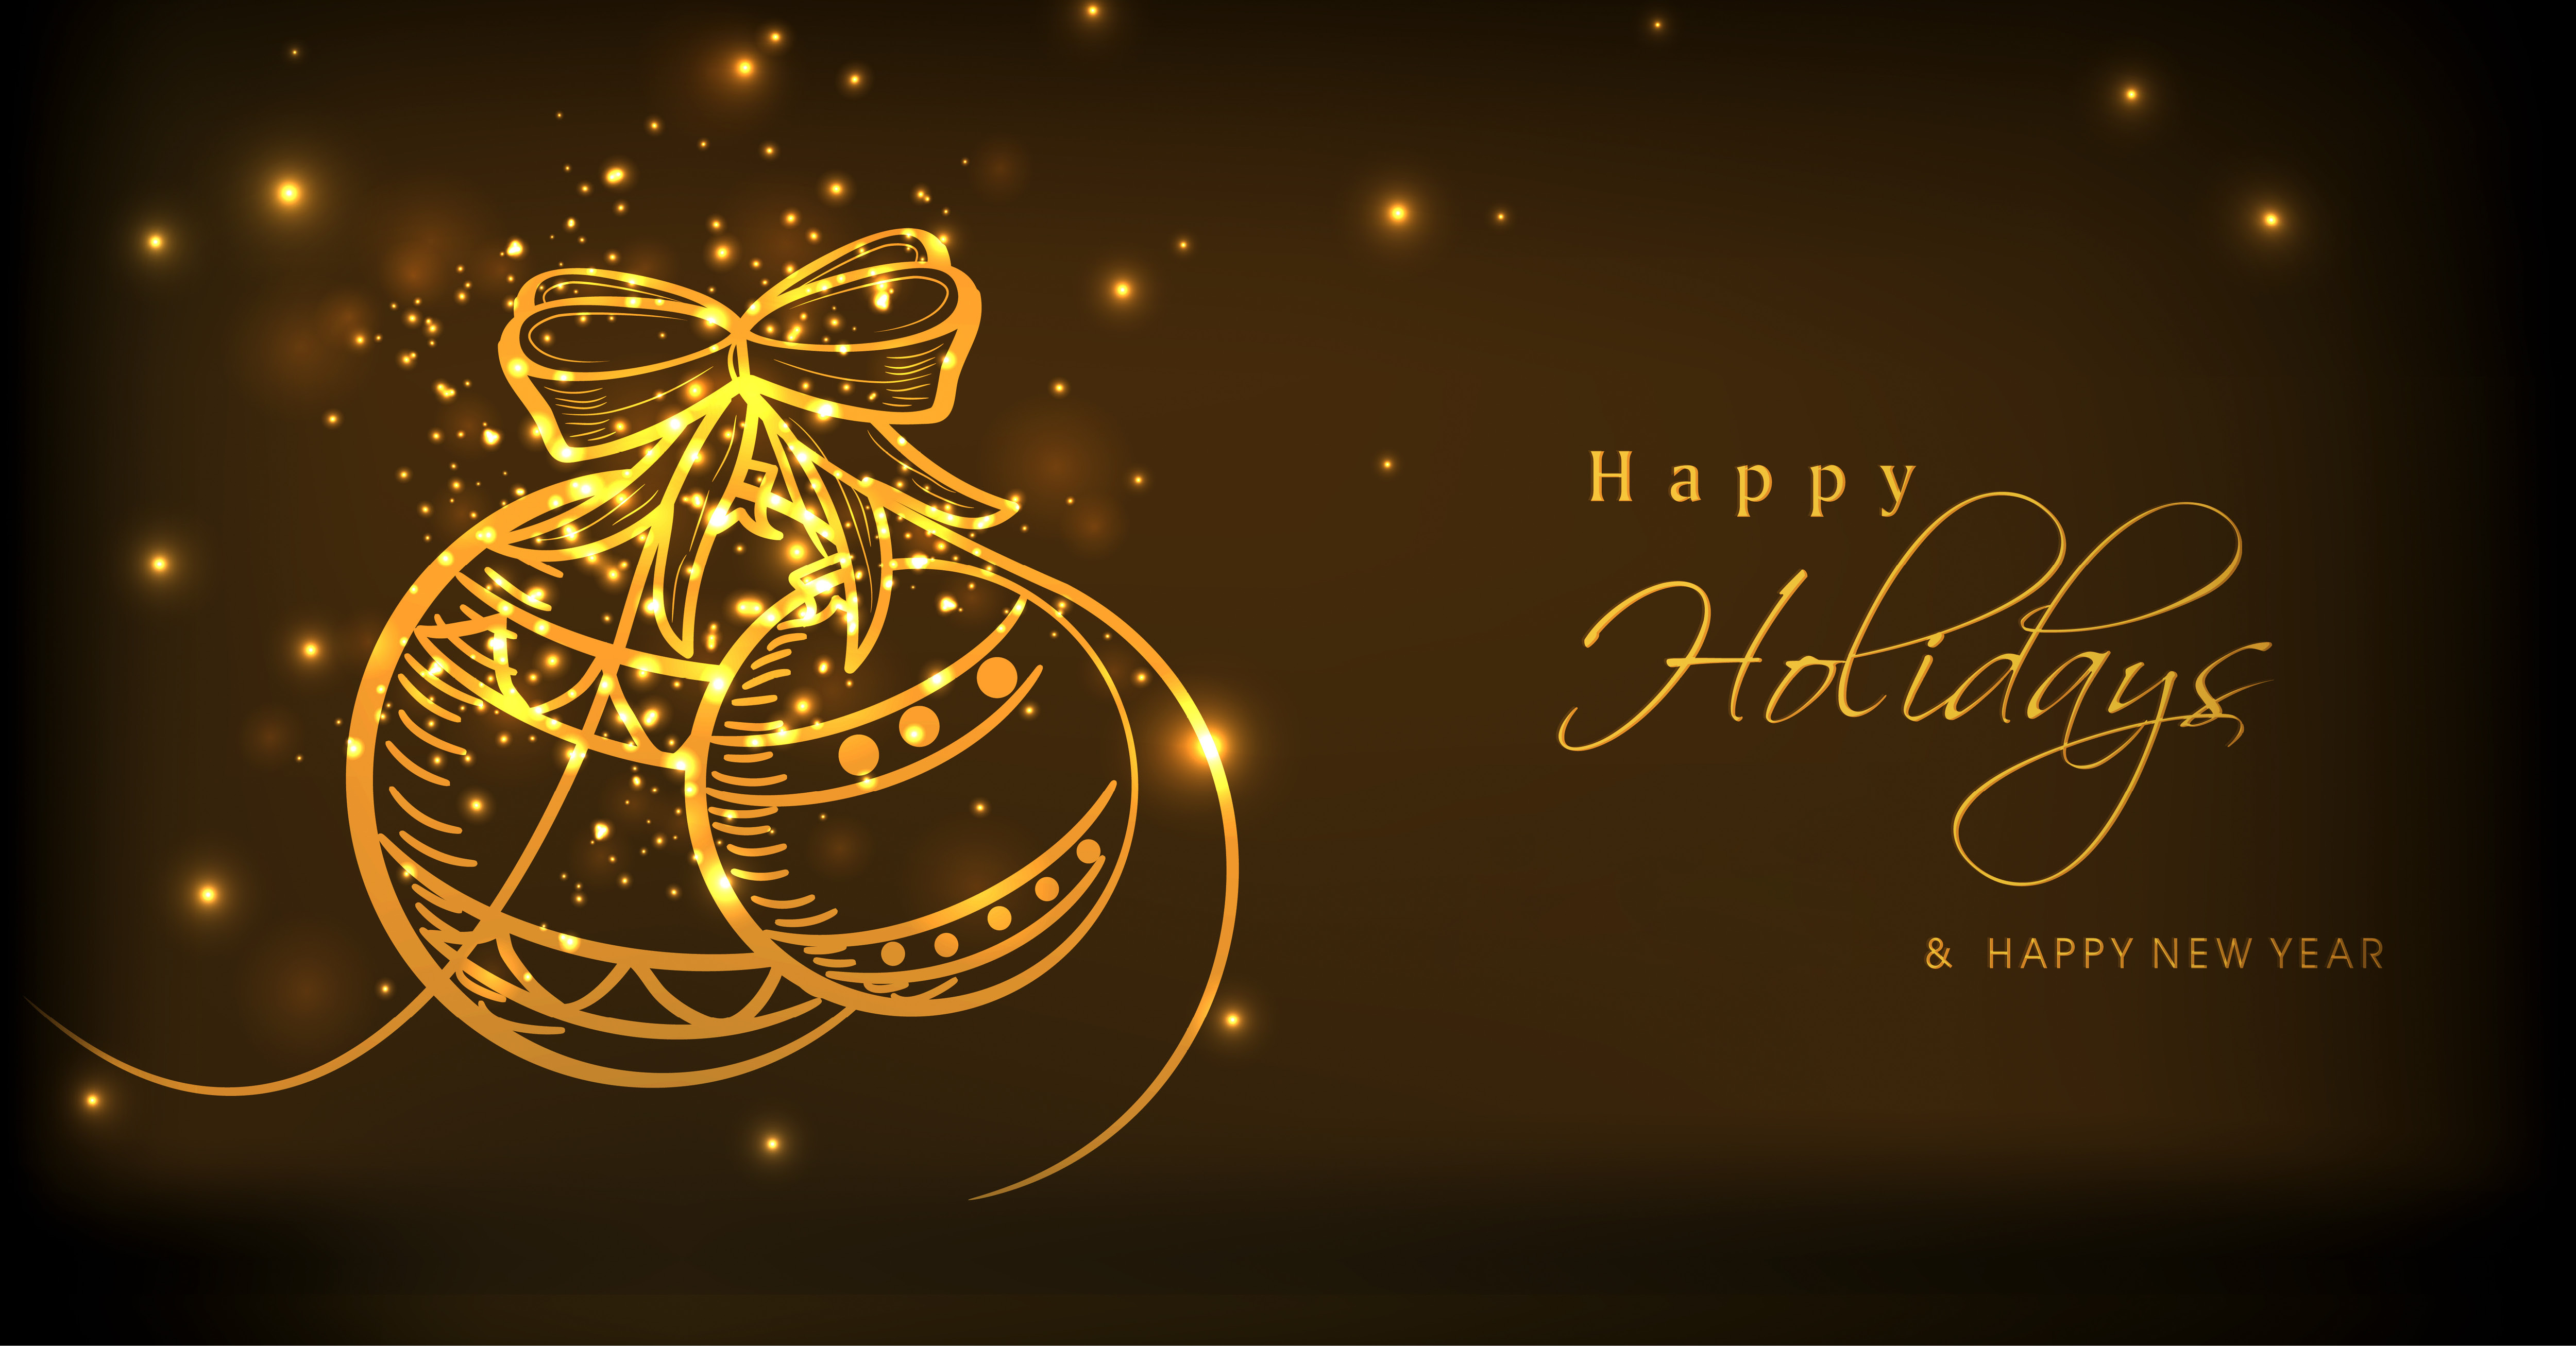 Happy Holidays From The Synergy Merchants Team!